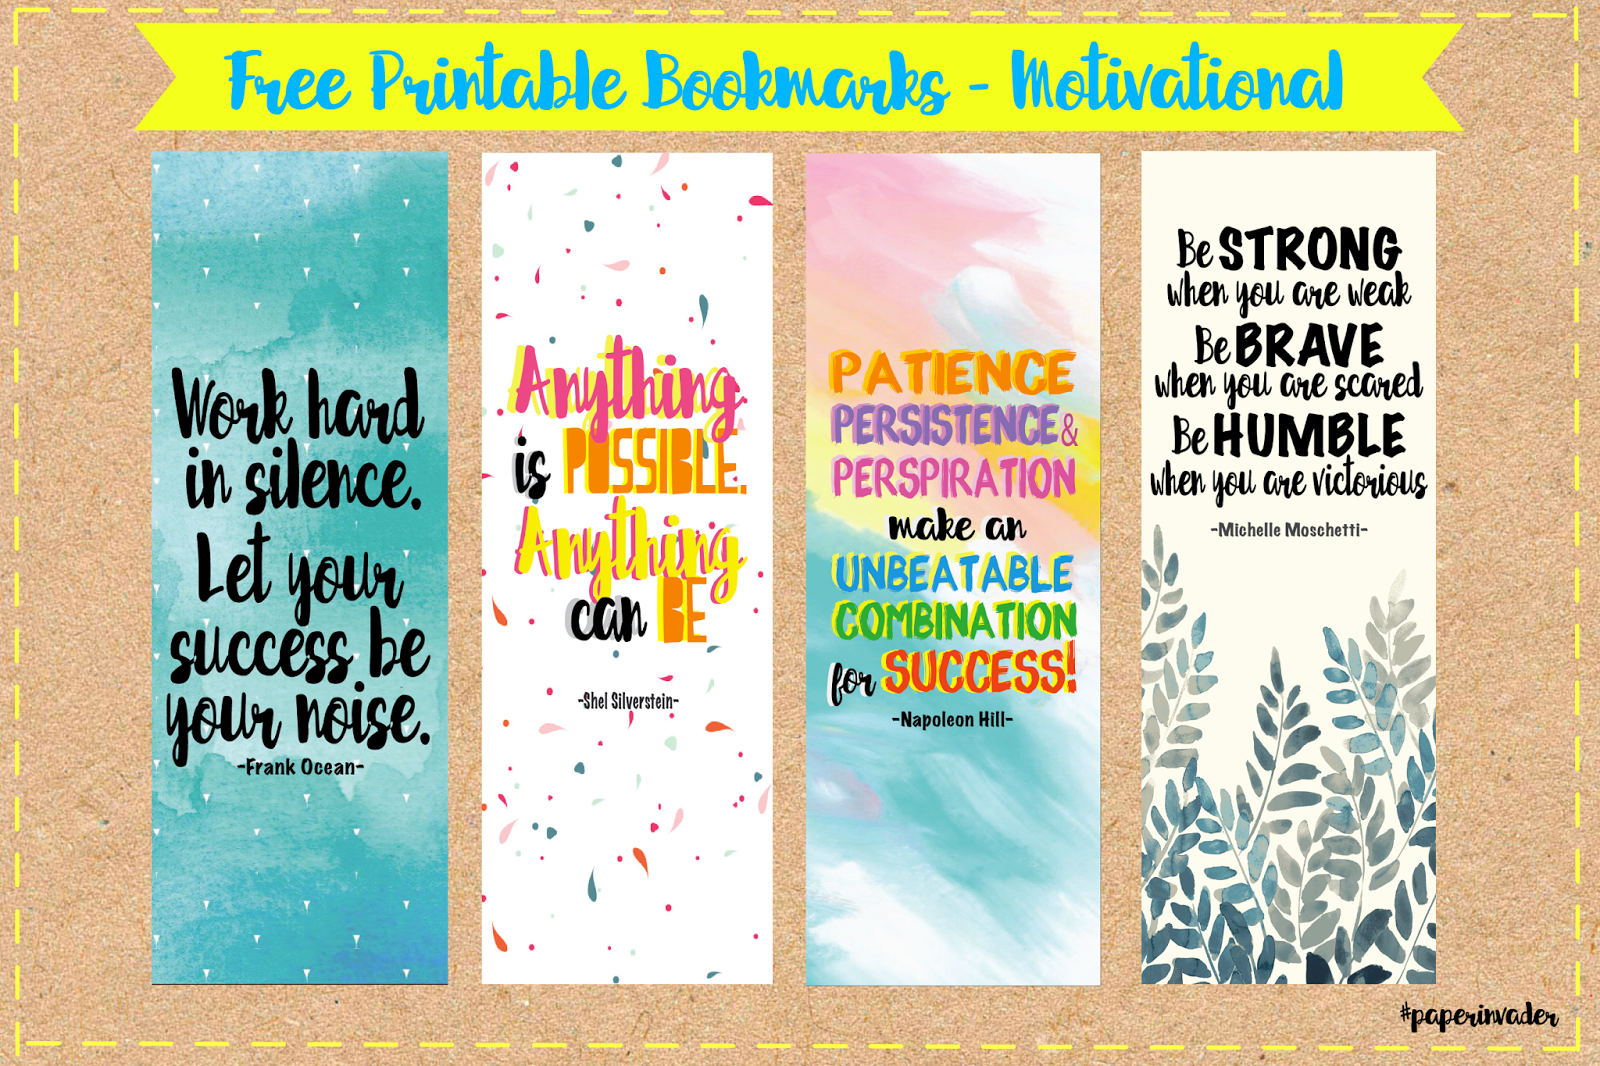 Selective image inside free printable bookmarks with quotes